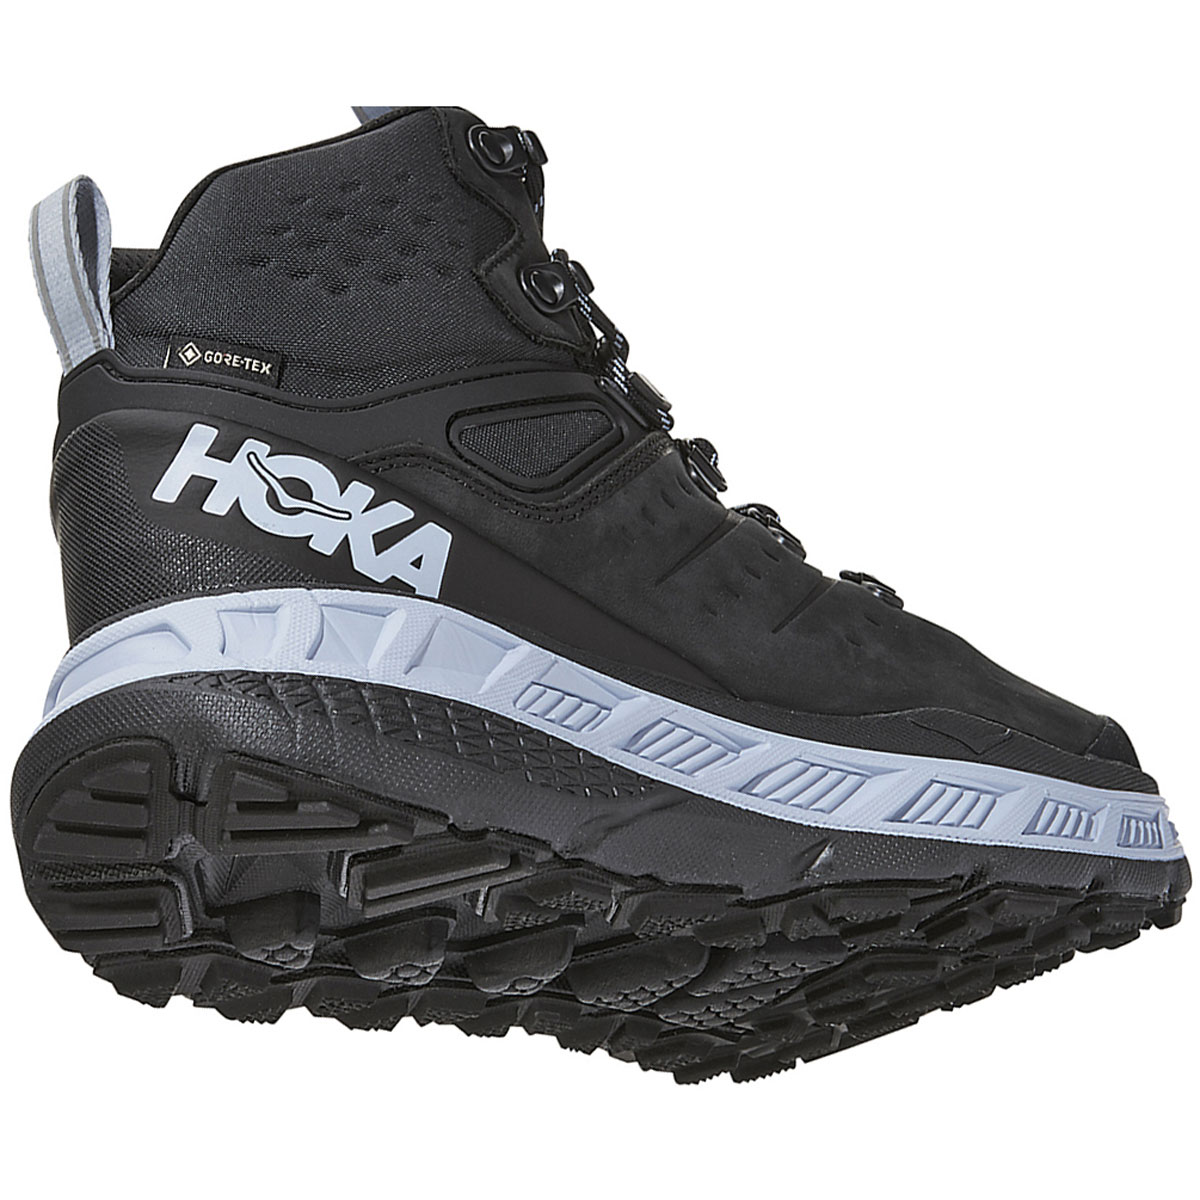 Women's Hoka One One Stinson Mid Gore-Tex Trail Running Shoe - Color: Anthracite/Heather - Size: 5 - Width: Regular, Anthracite/Heather, large, image 3